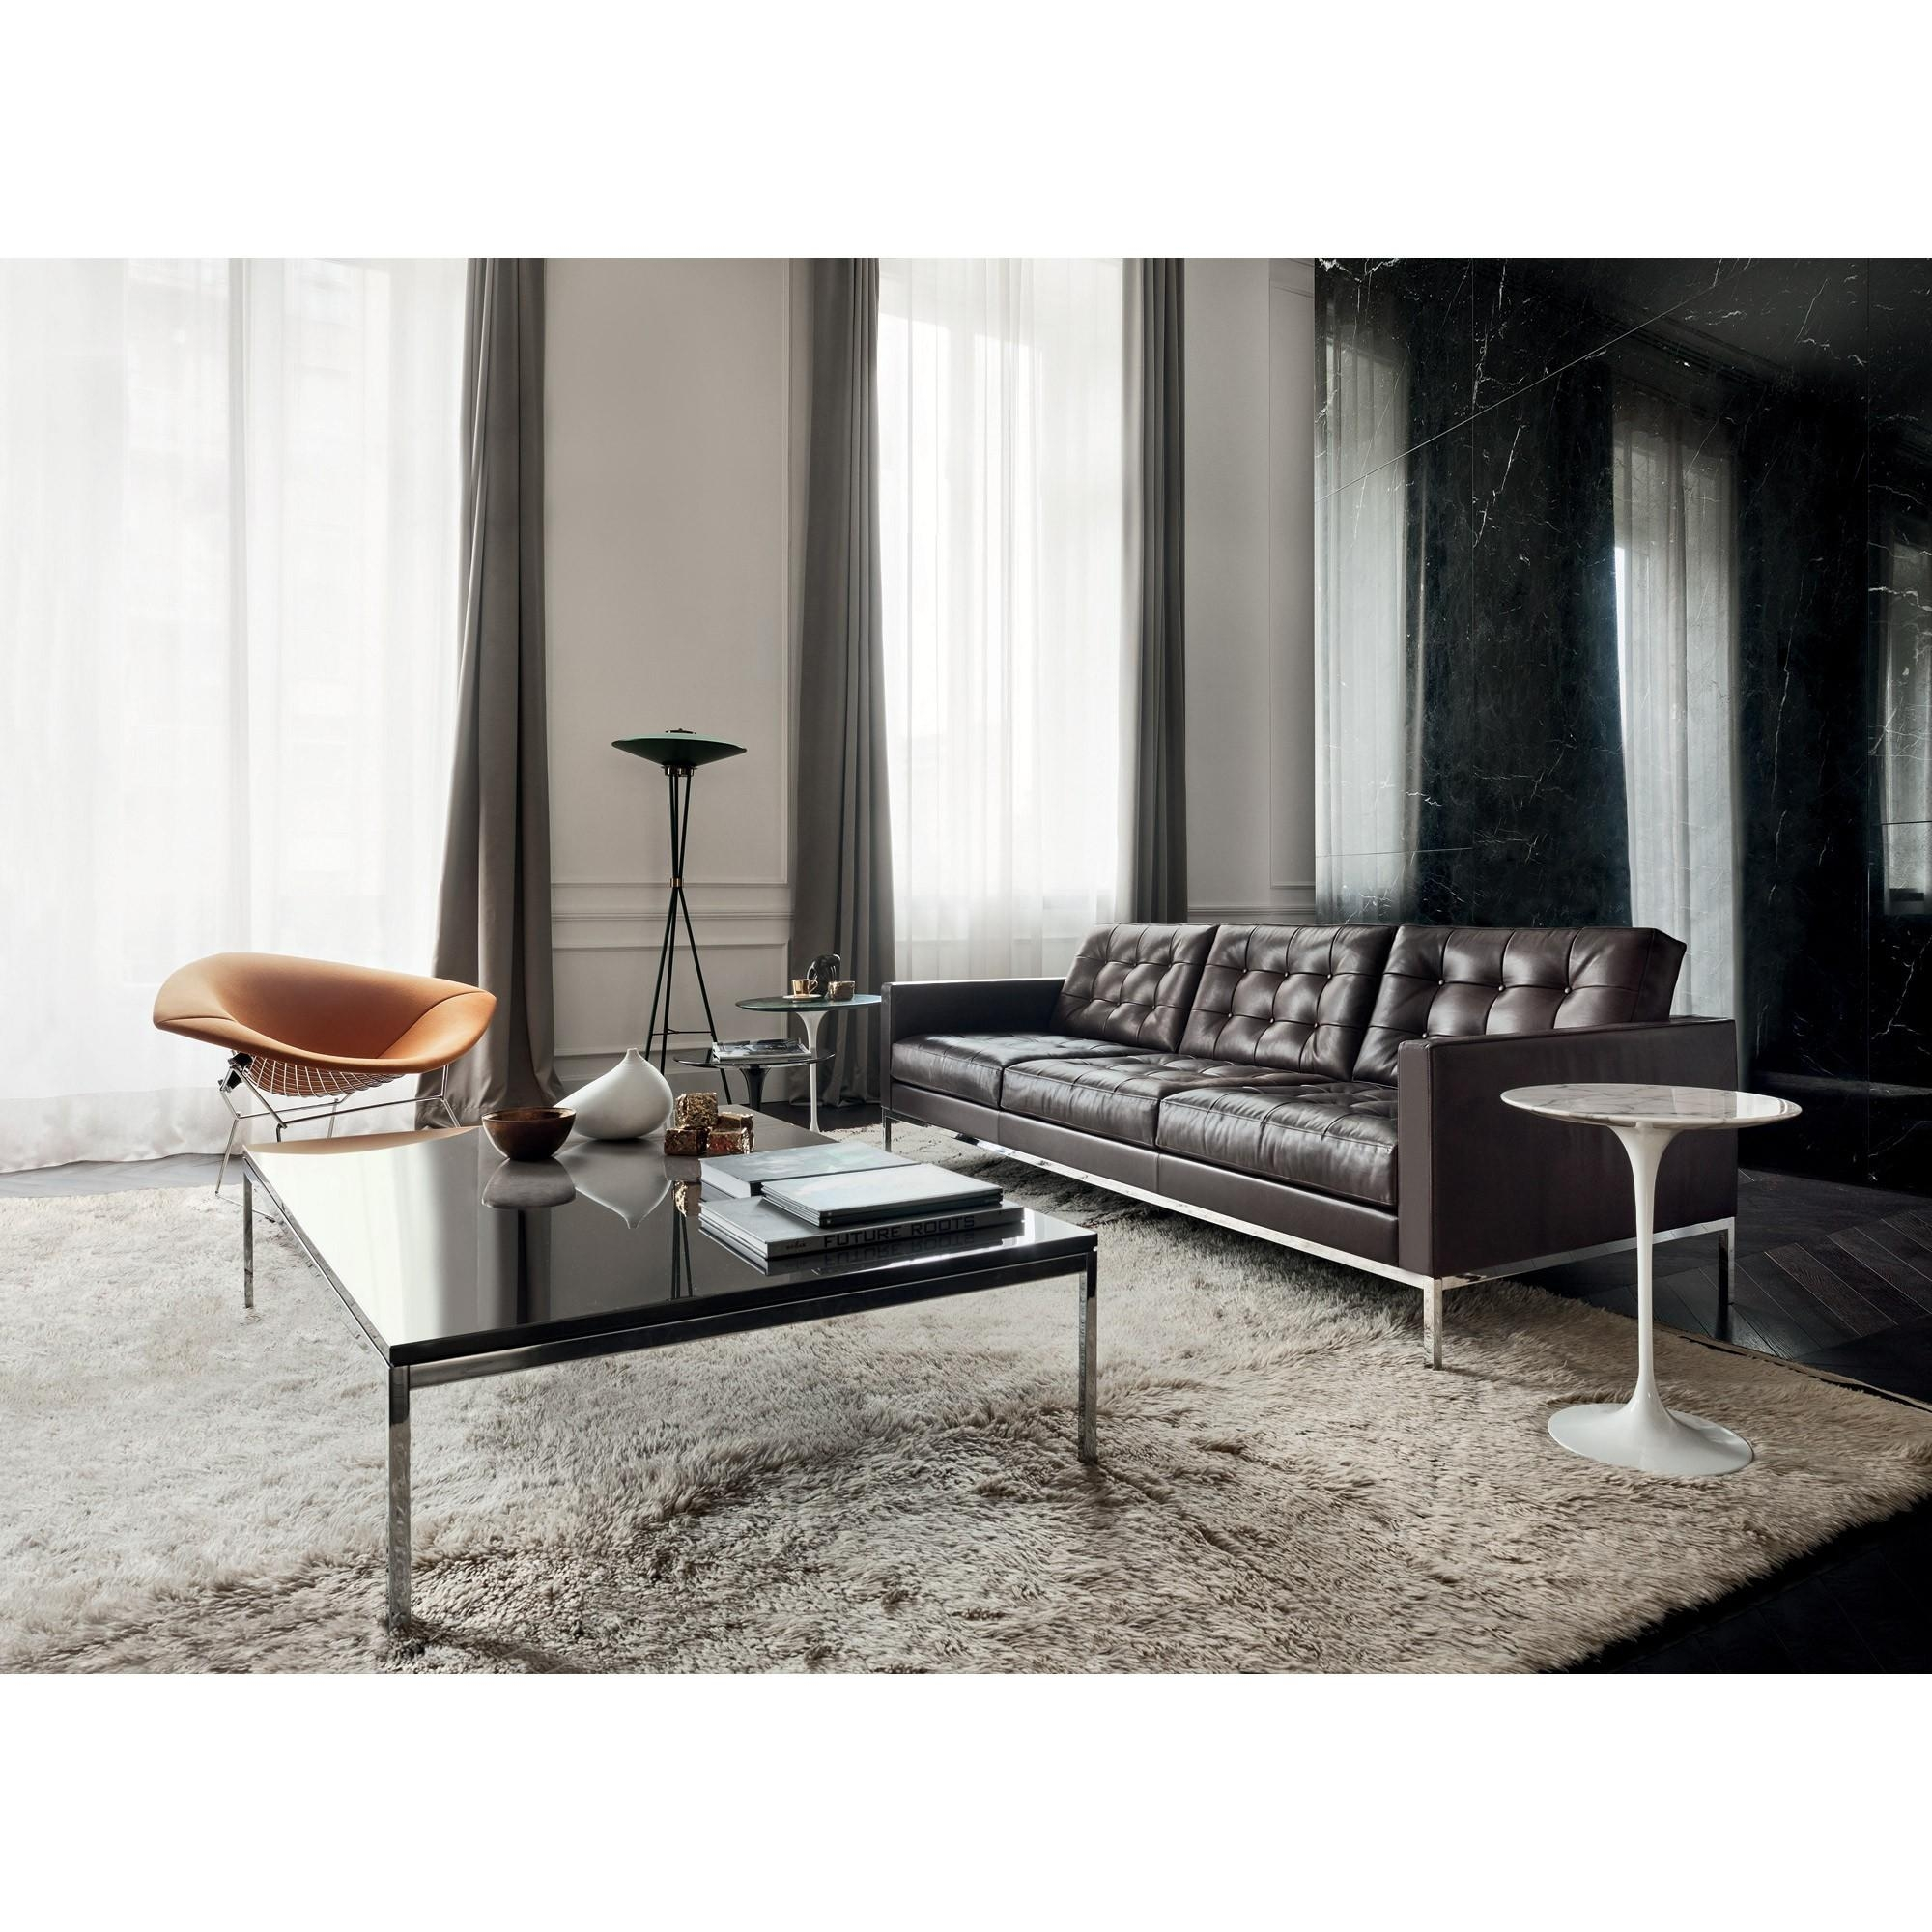 Florence Knoll 'relax' Sofa | Skandium In Florence Knoll 3 Seater Sofas (Image 3 of 20)